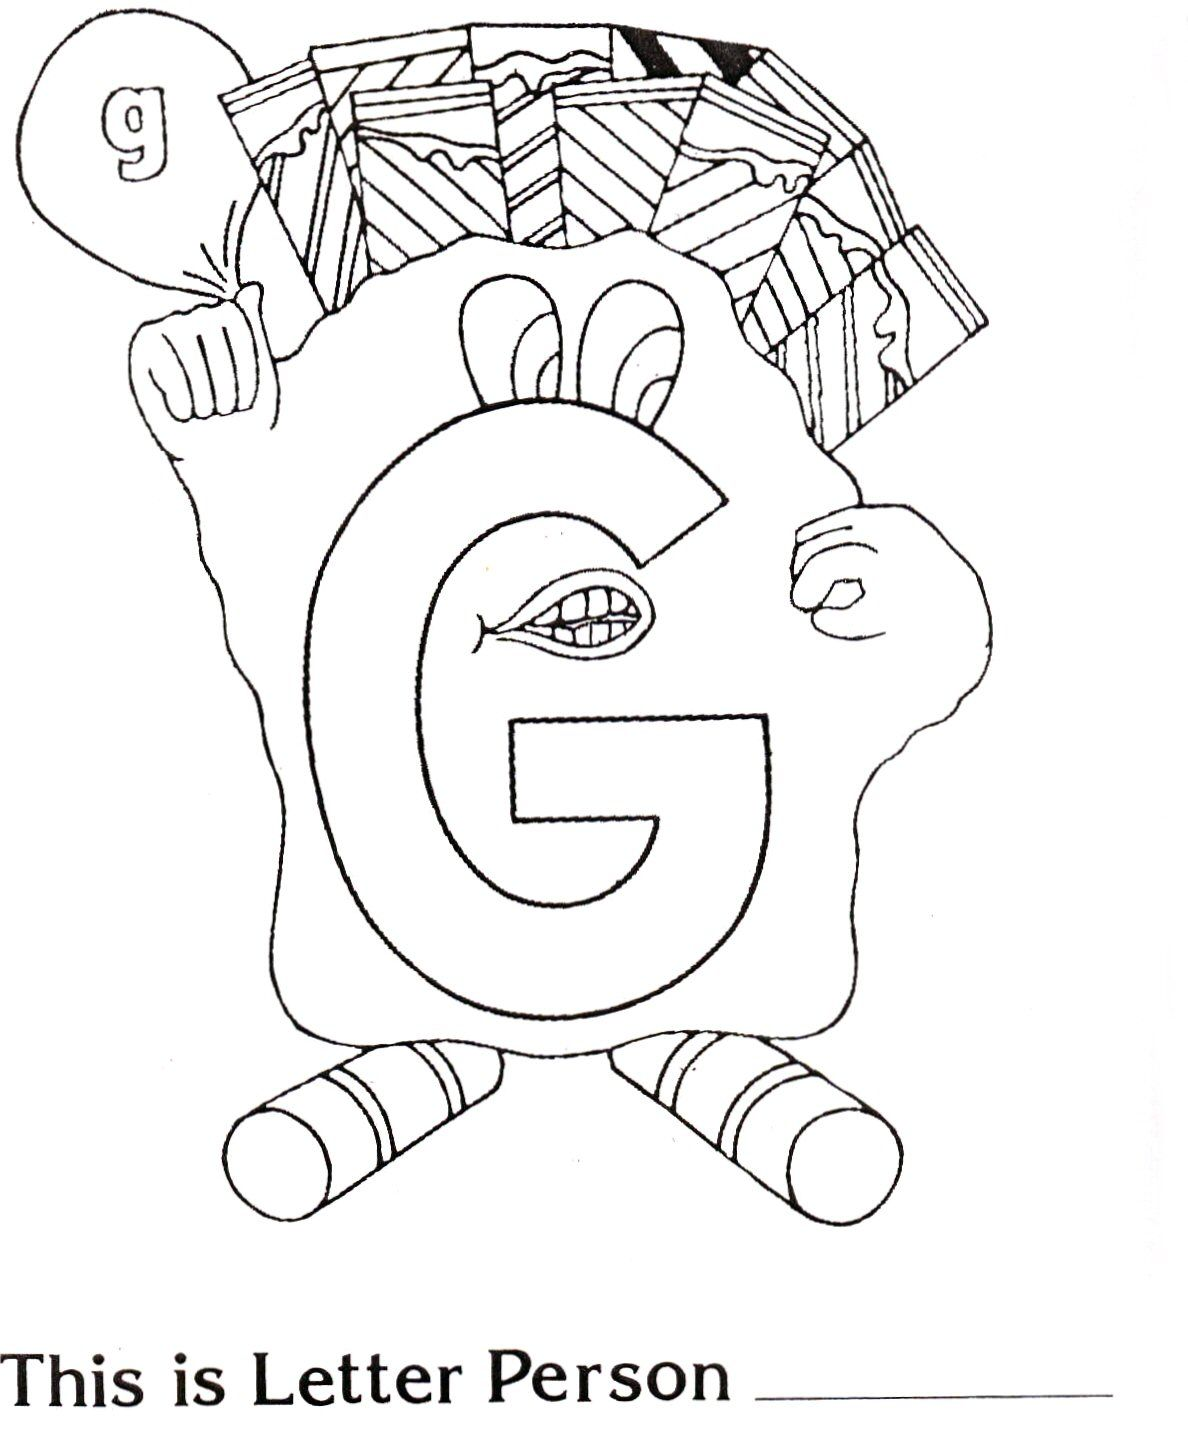 Brilliant Beginnings Preschool: Letter Person G Coloring Page ...